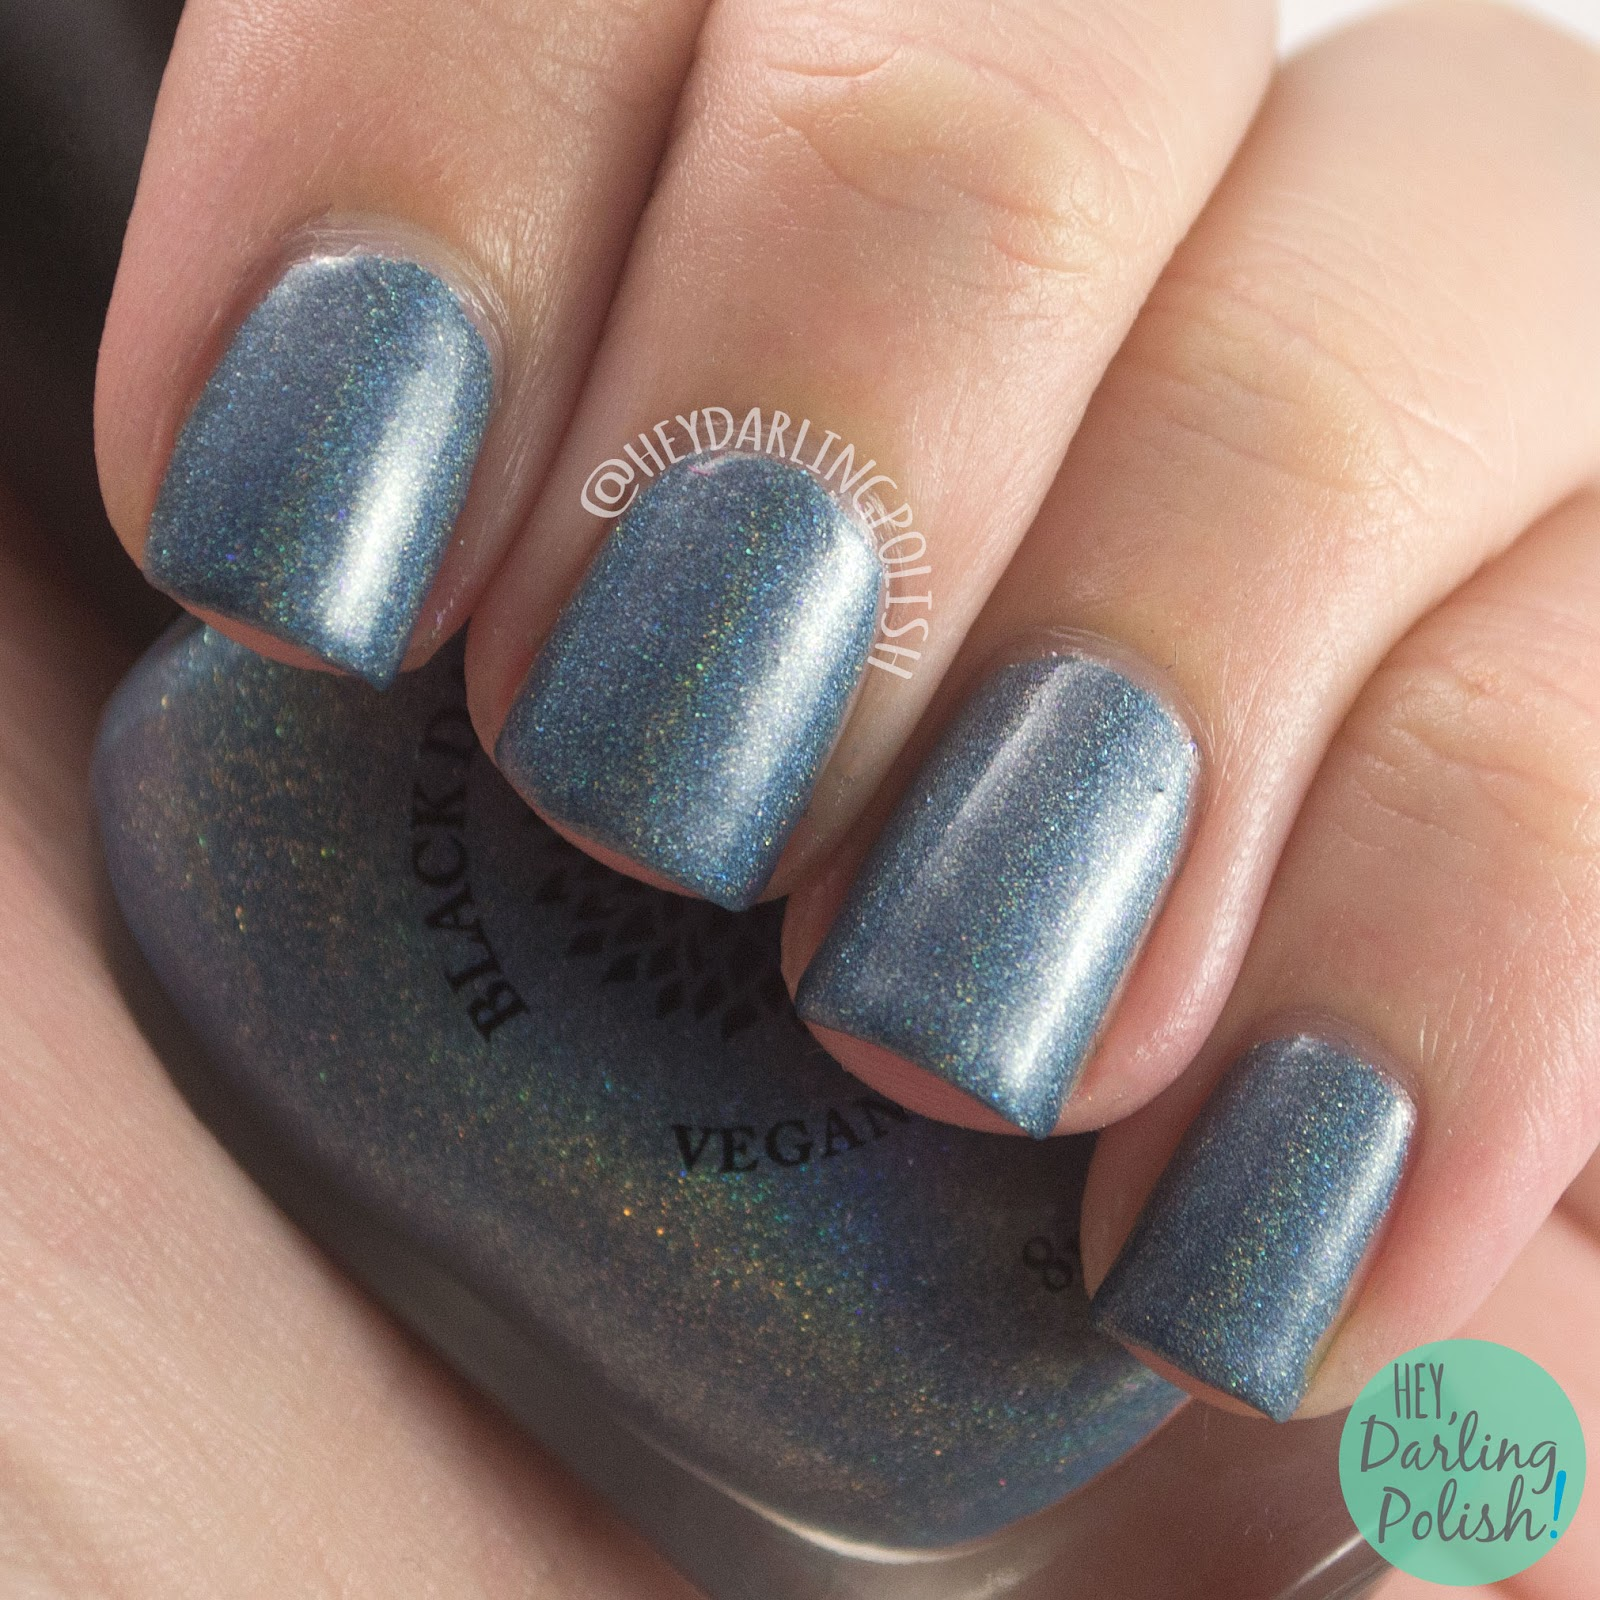 blue, silver blue, silver willow, holo, holographic, nails, nail polish, indie polish, indie nail polish, hey darling polish, black dahlia lacquer,